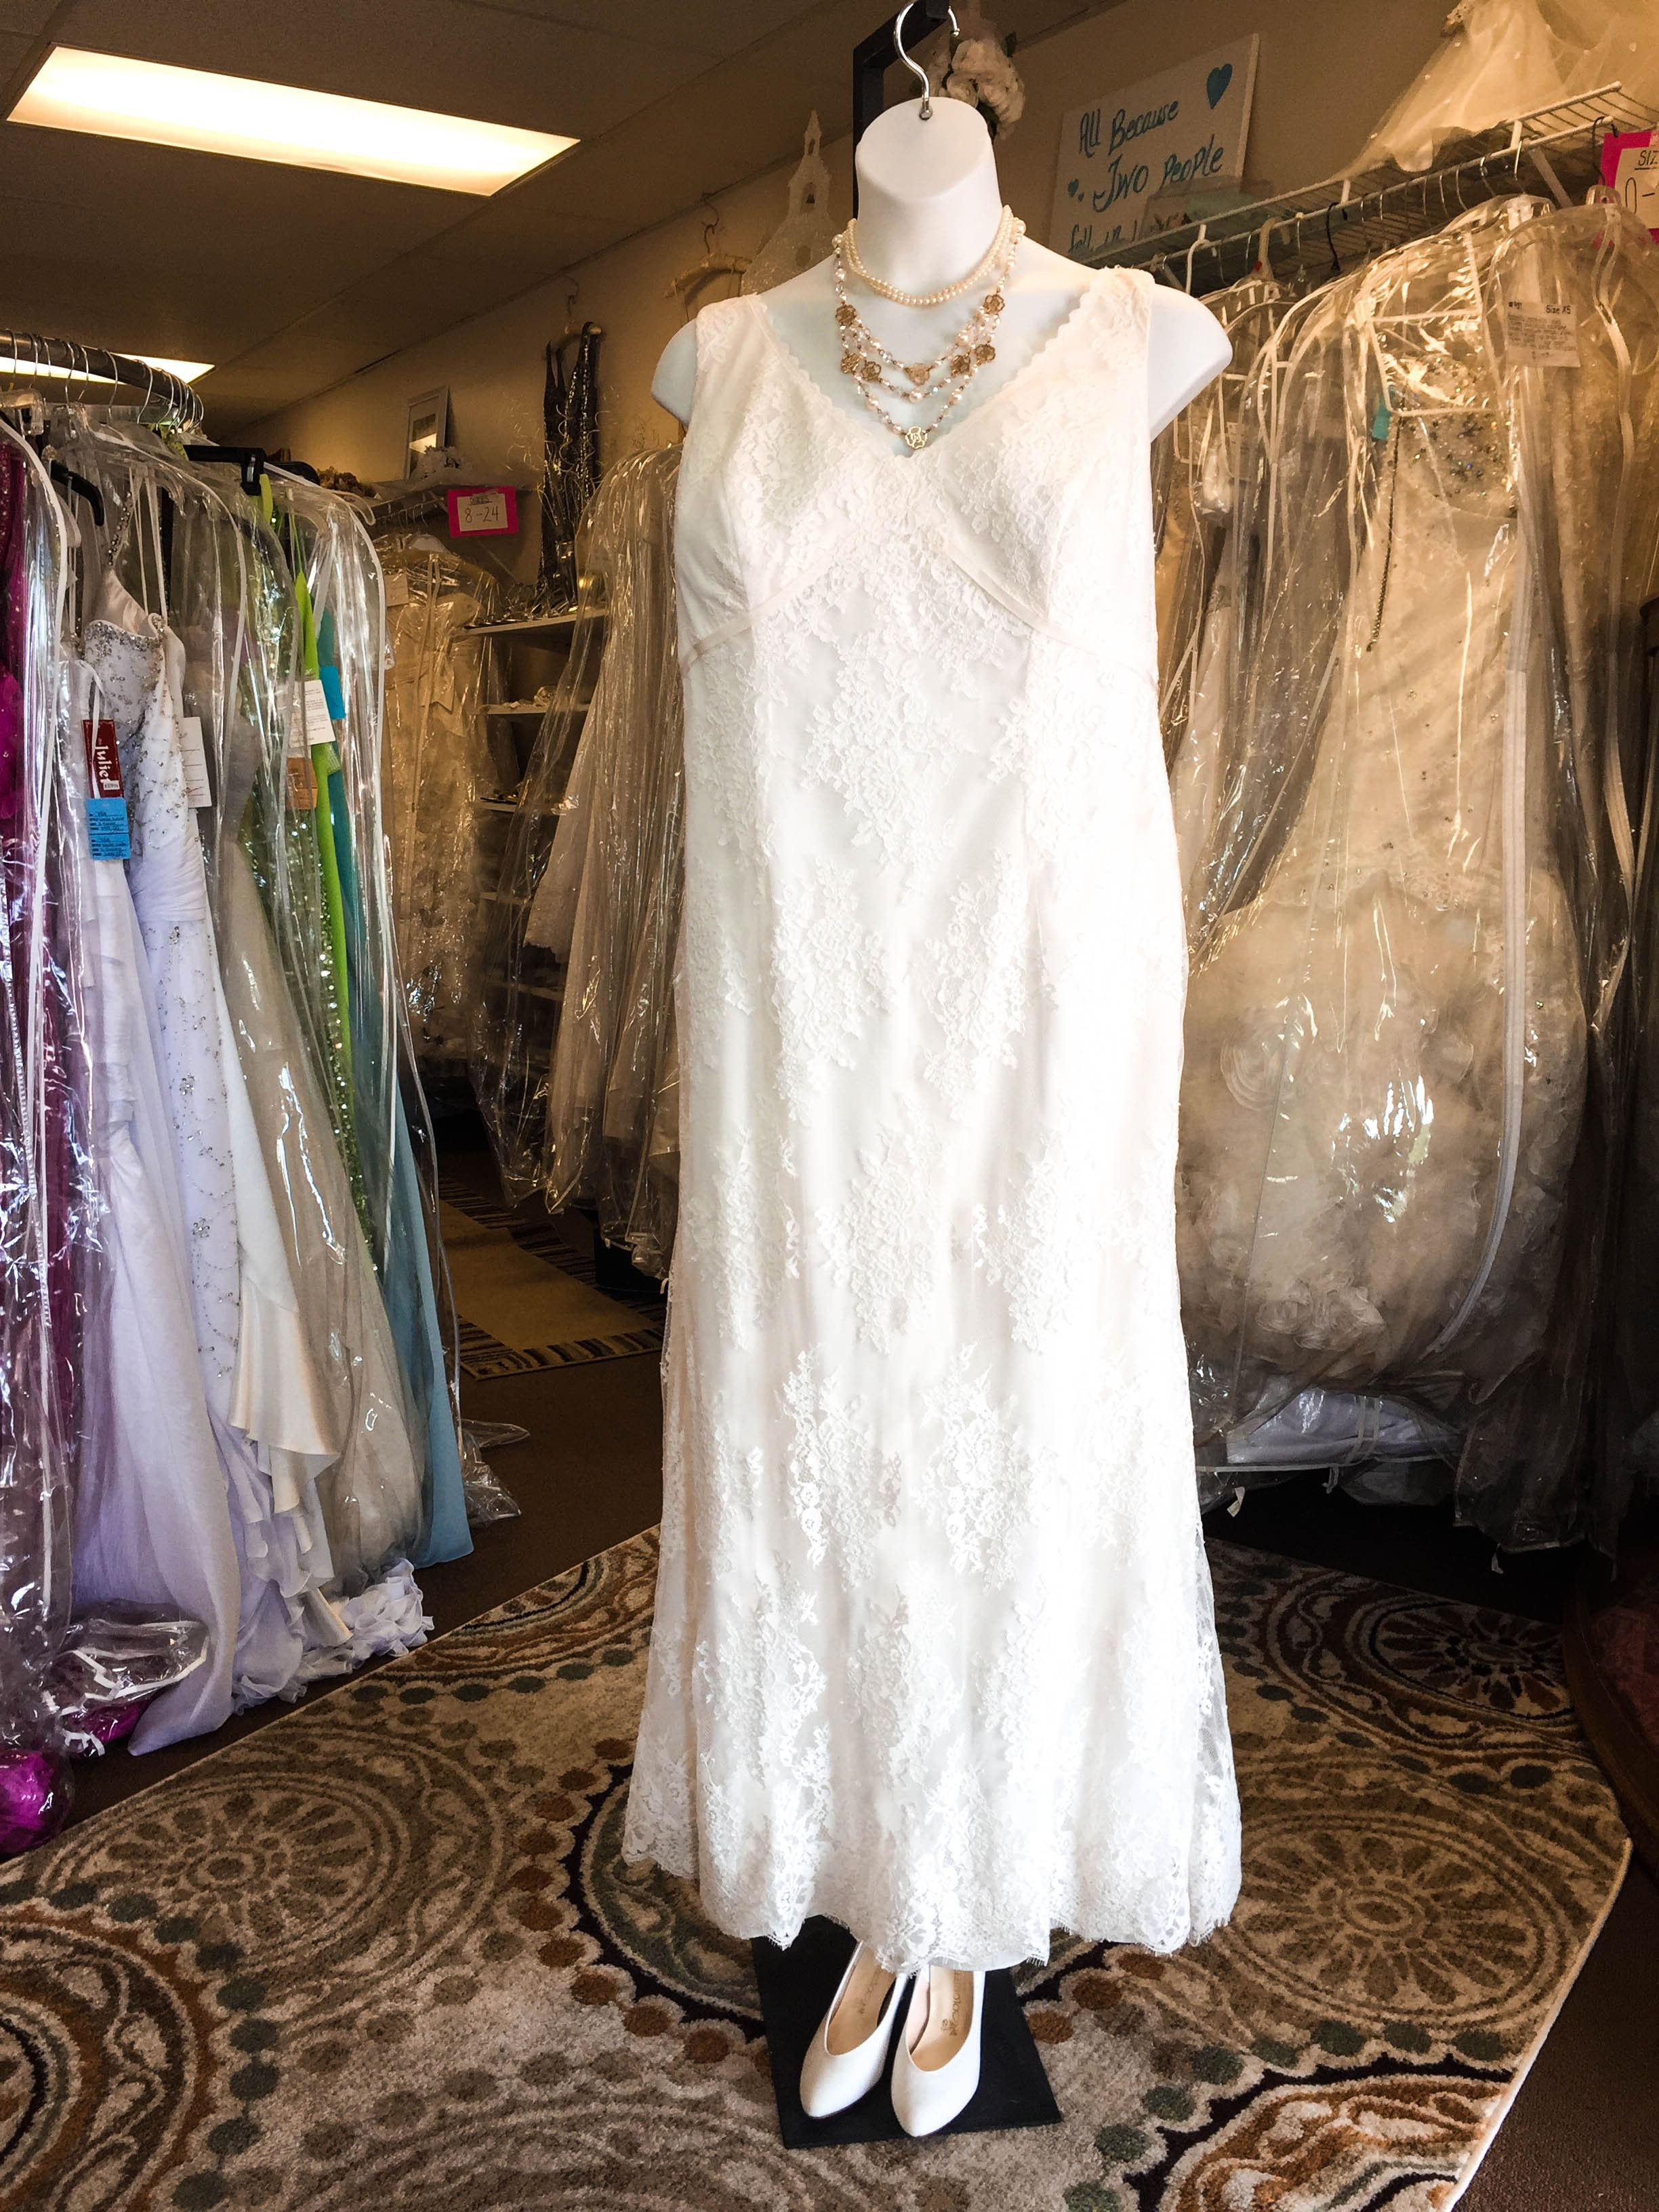 Beach Wedding Gowns All Sizes From To Plus Sizes This Dress